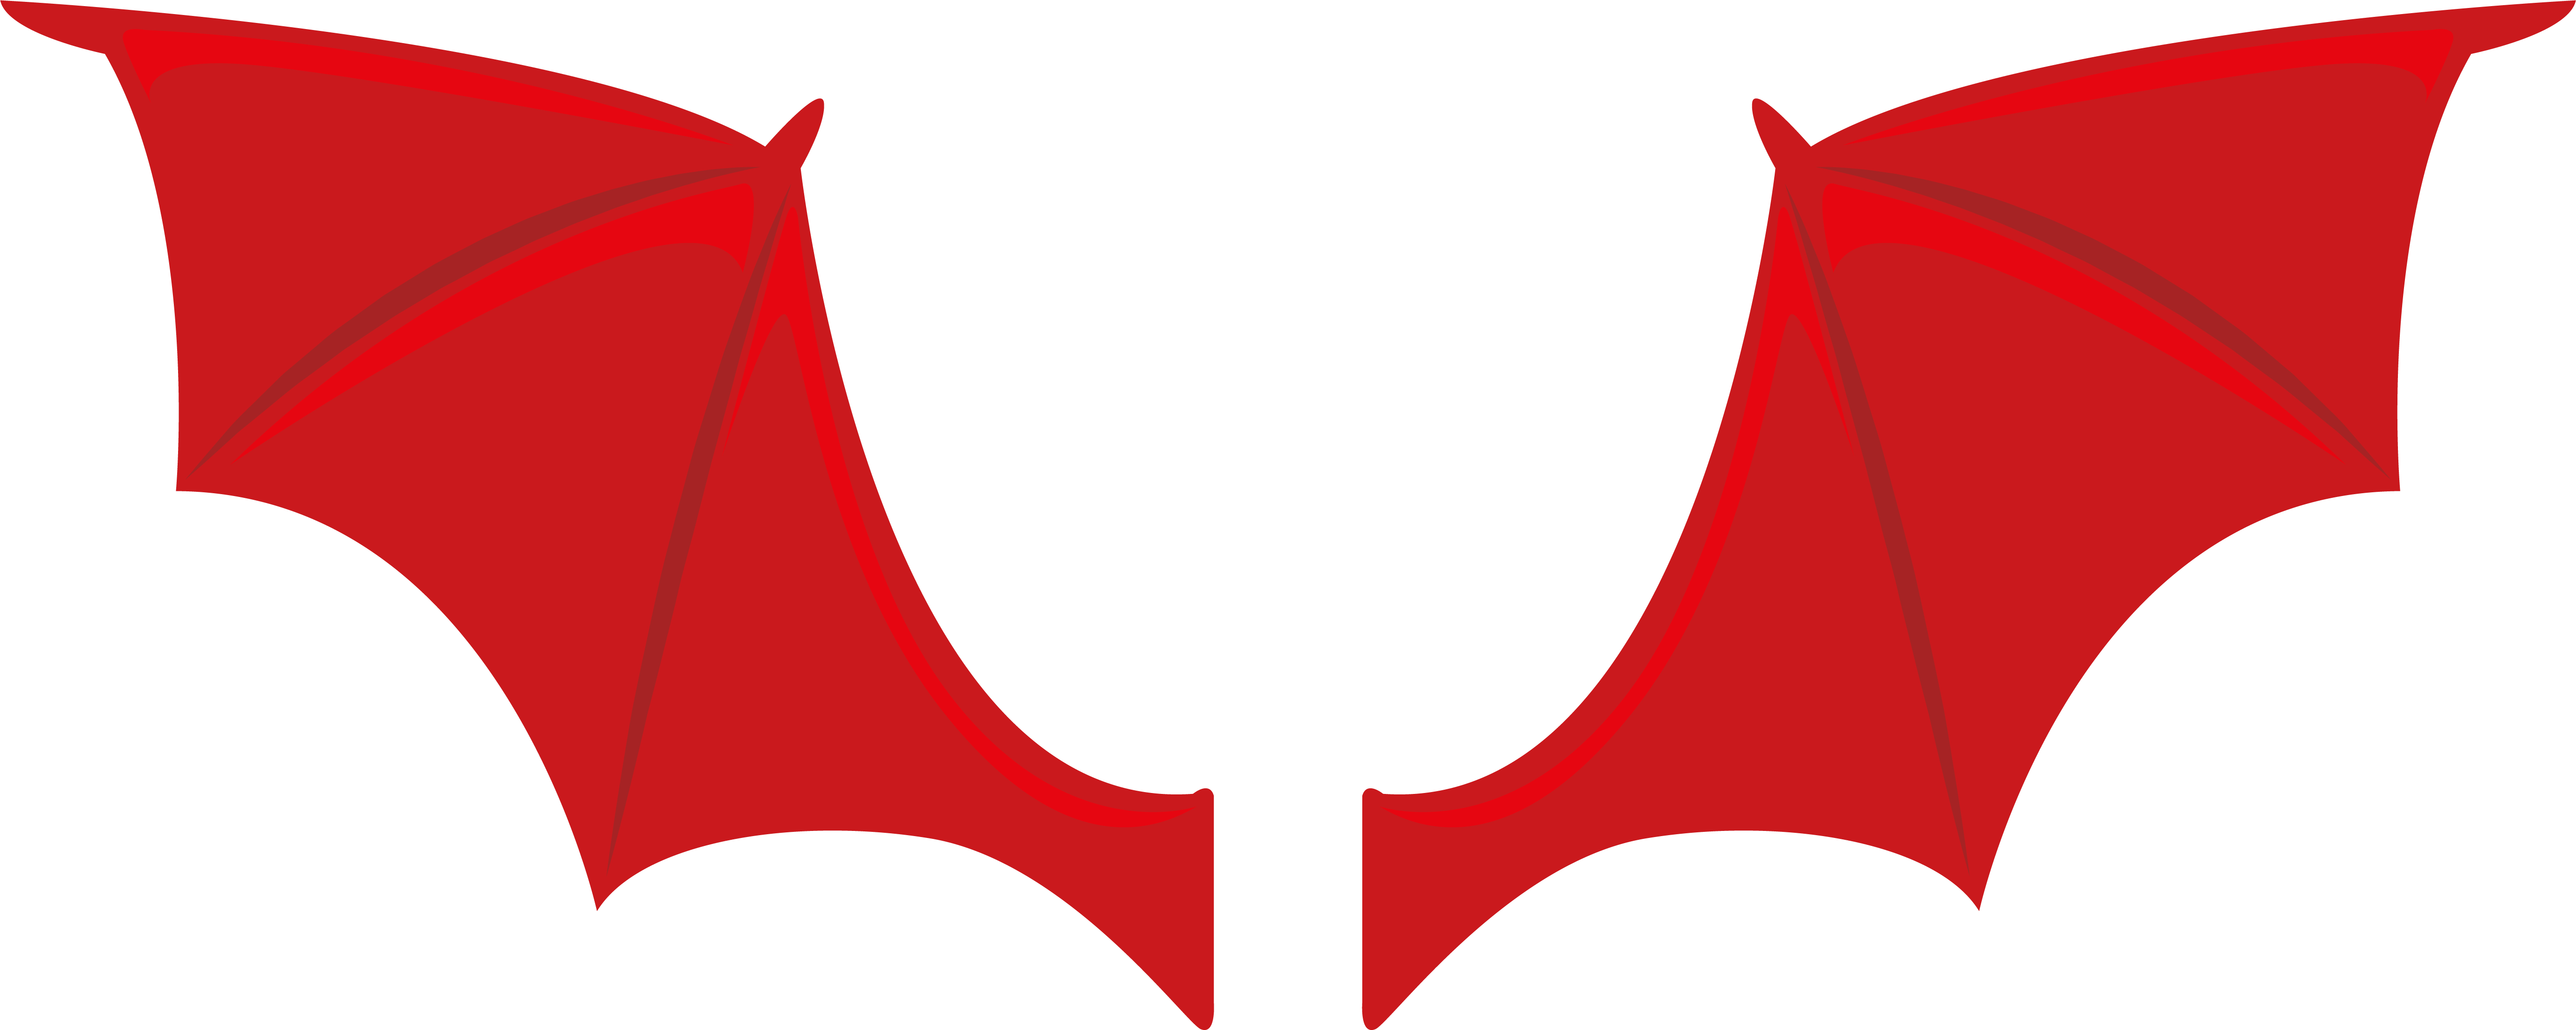 Devil clipart wings. Angel icon red transprent